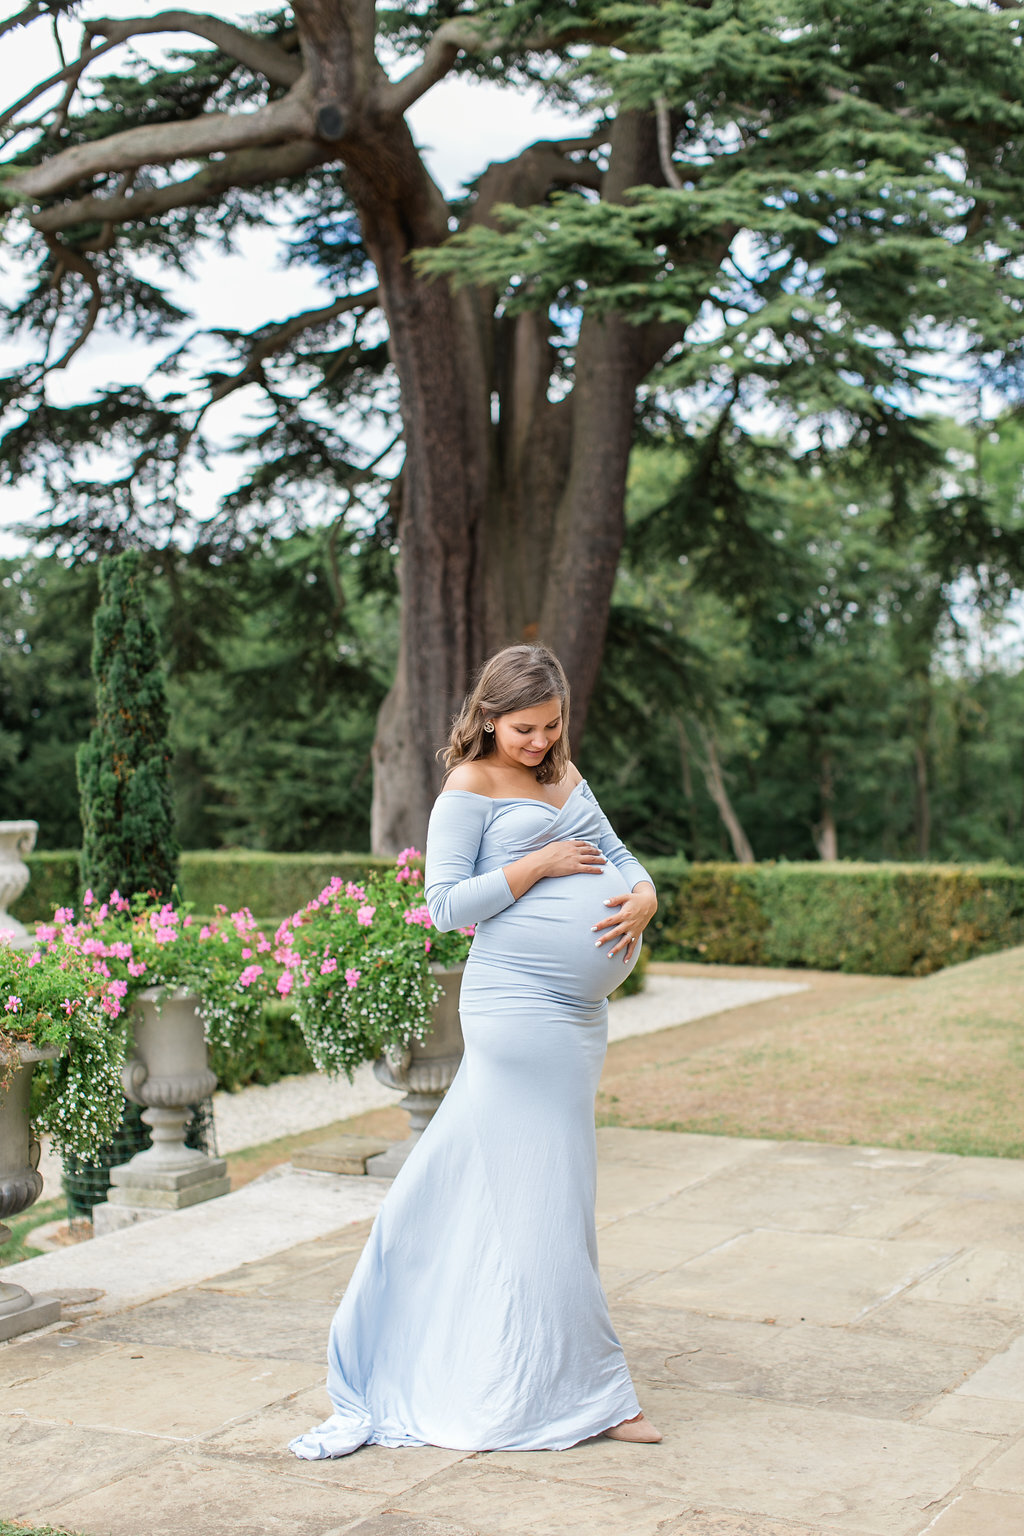 maternity-session-hedsor-house-roberta-facchini-55